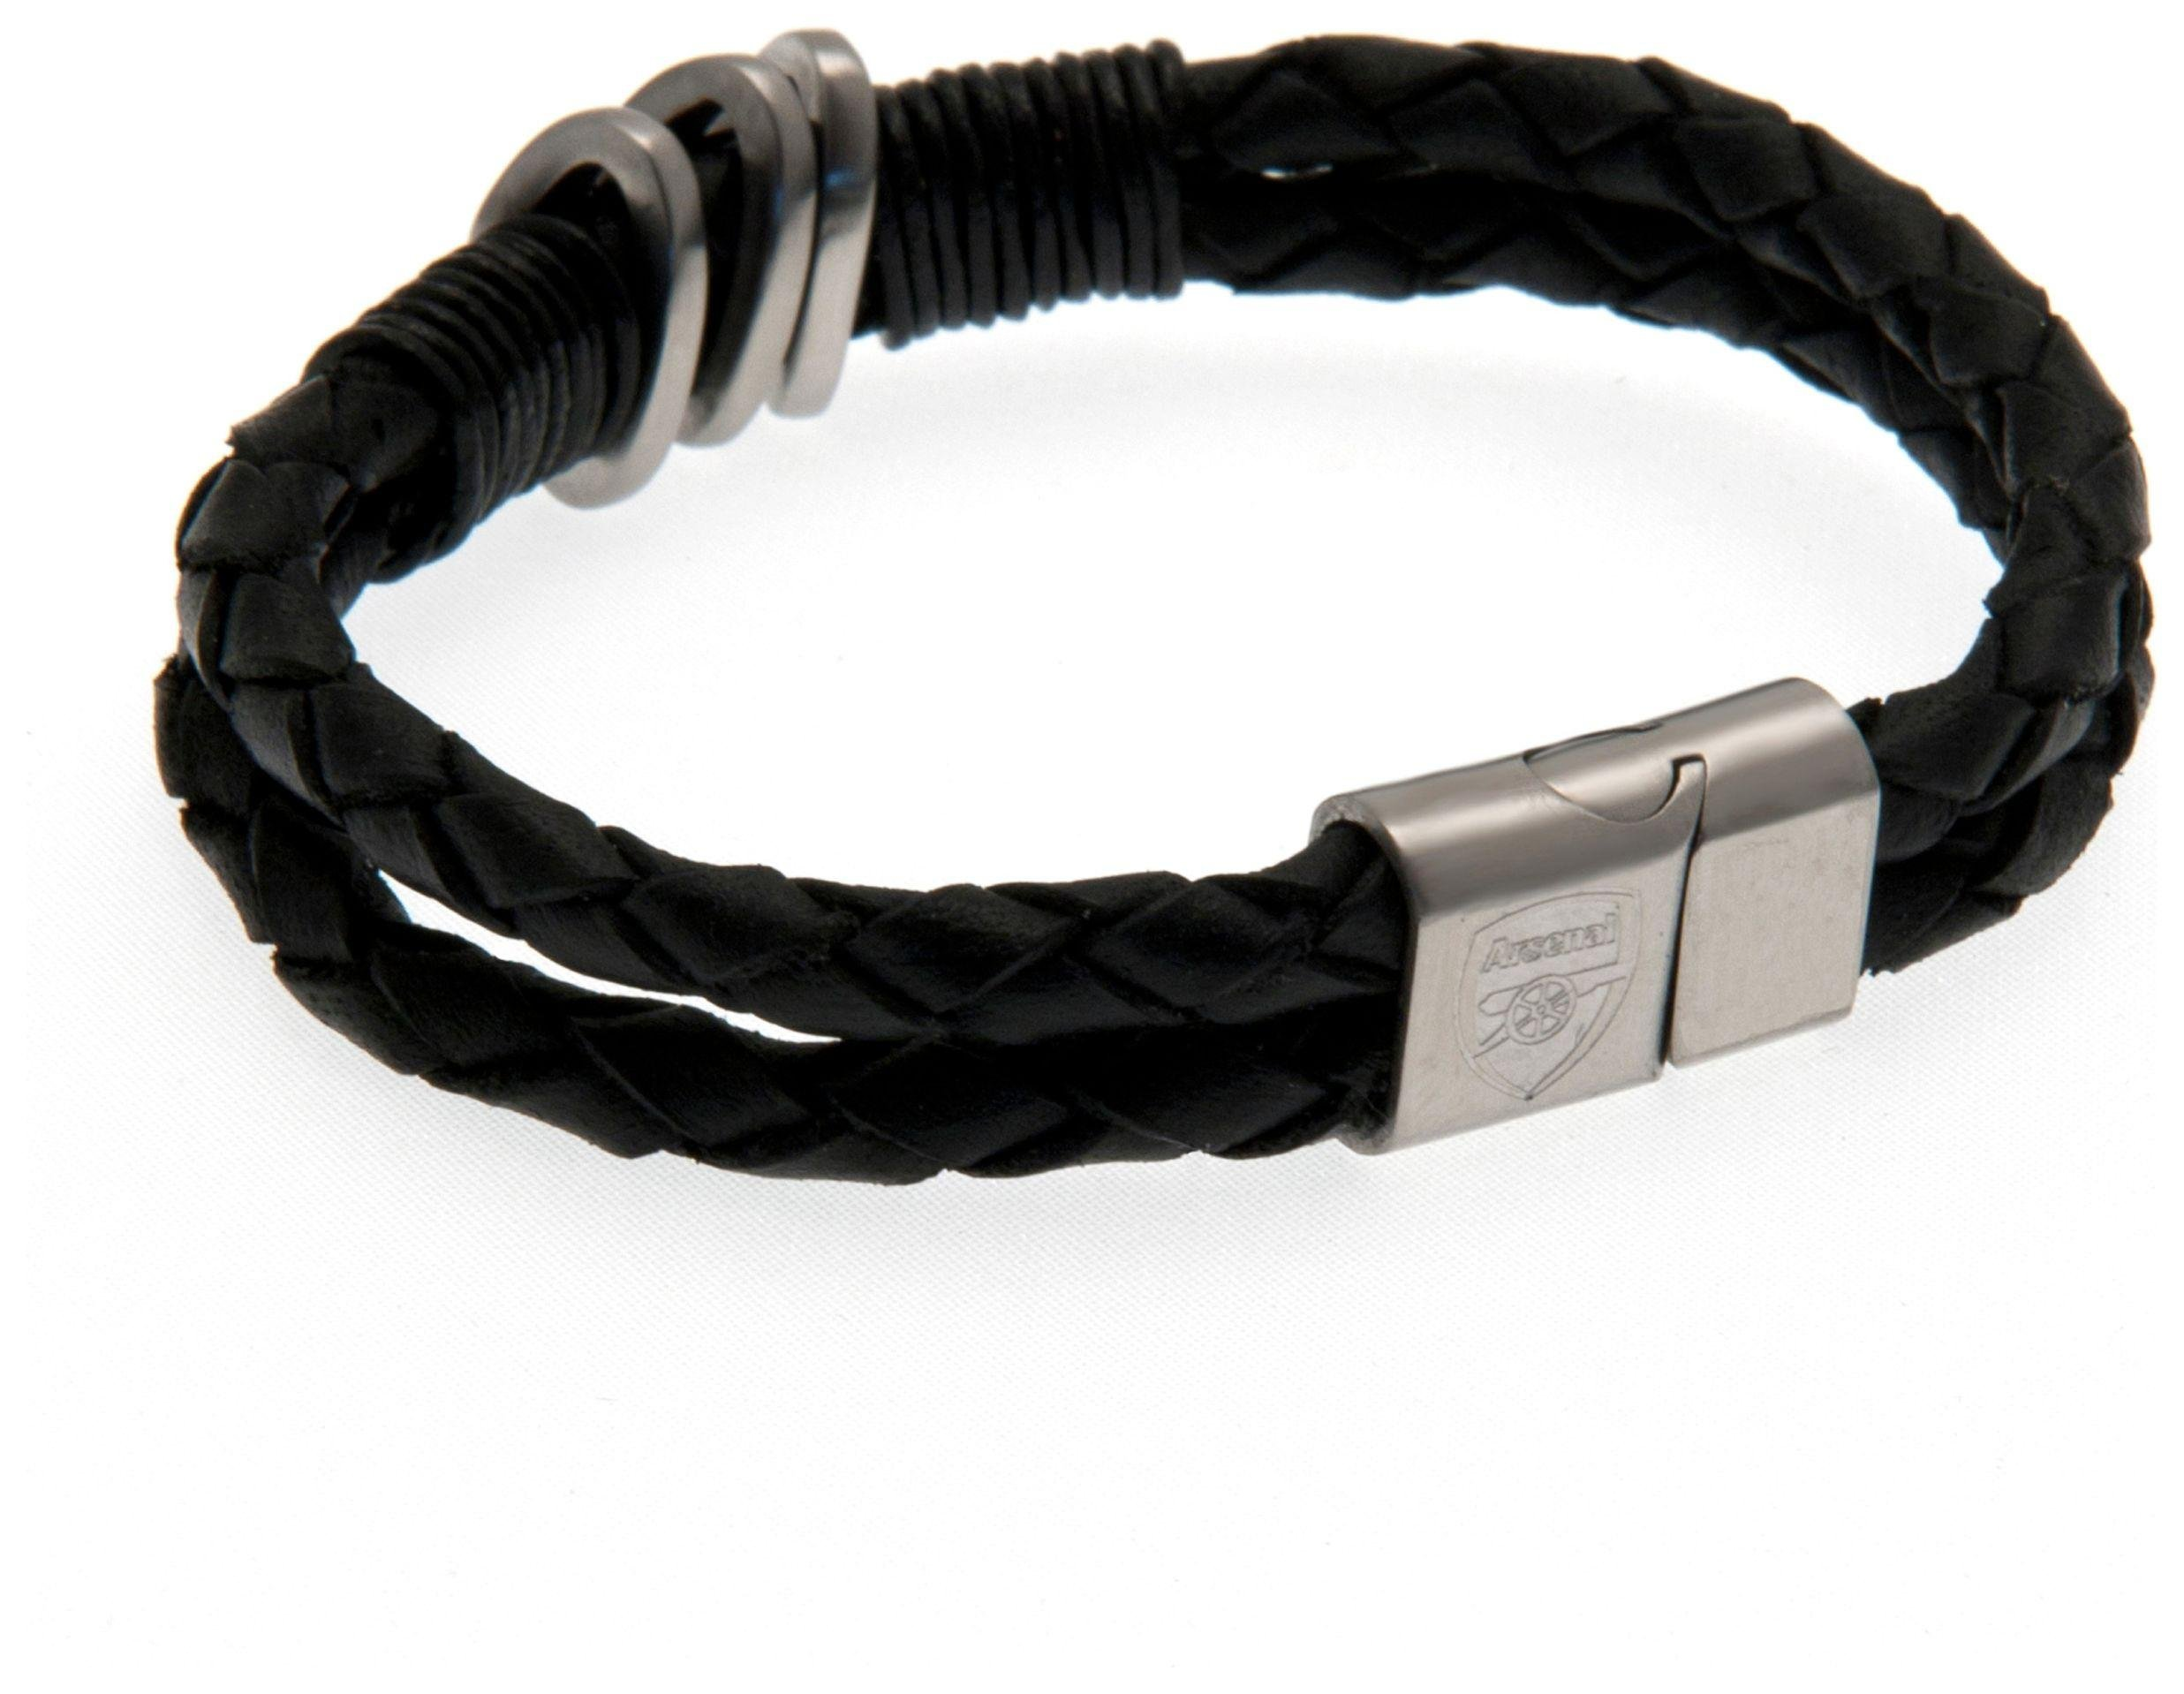 Image of Stainless Steel and Leather Arsenal Bracelet.